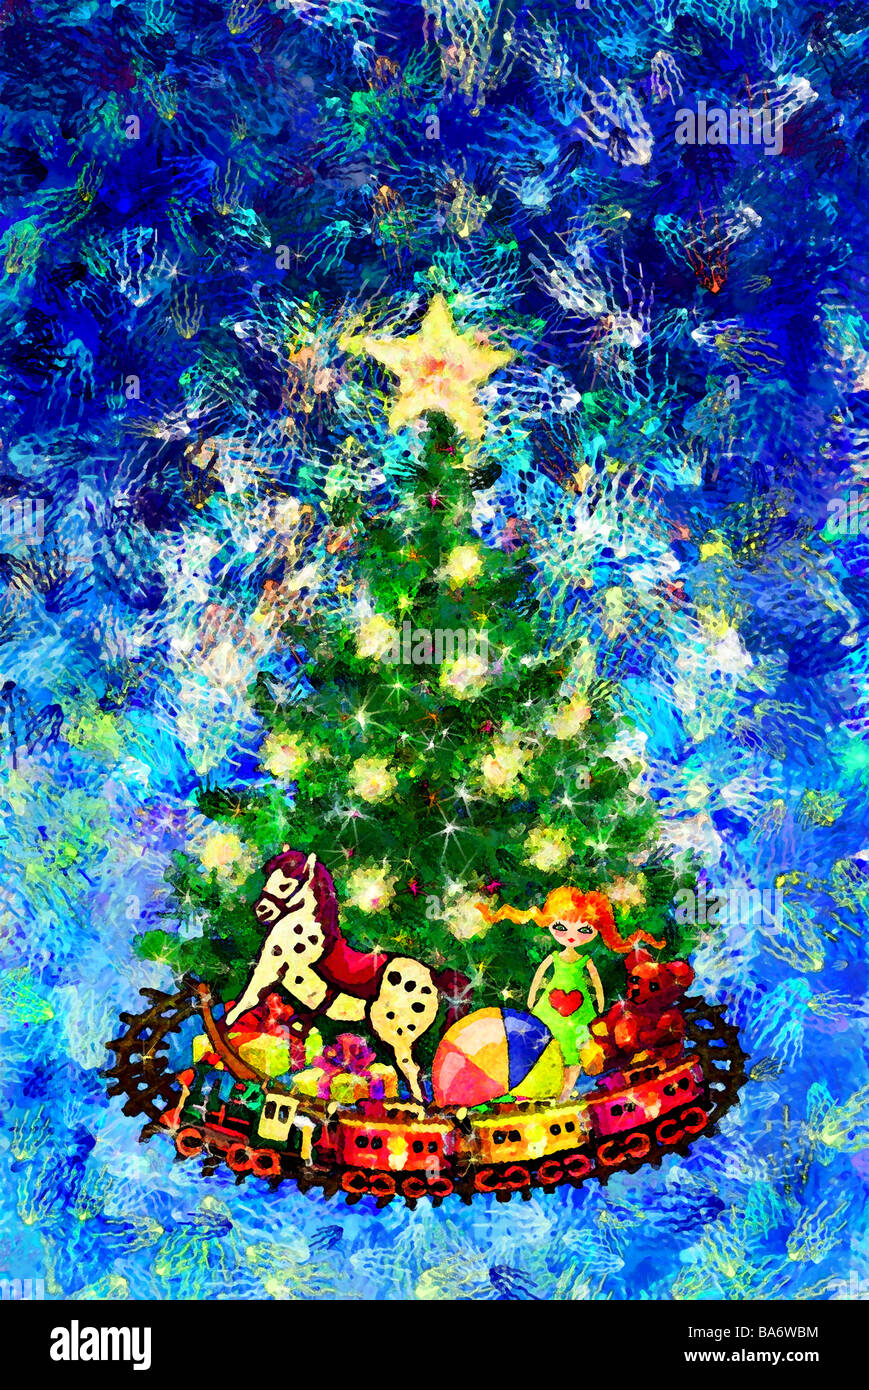 Illustration Christmas Christian-tree gifts toy computer-graphics ...